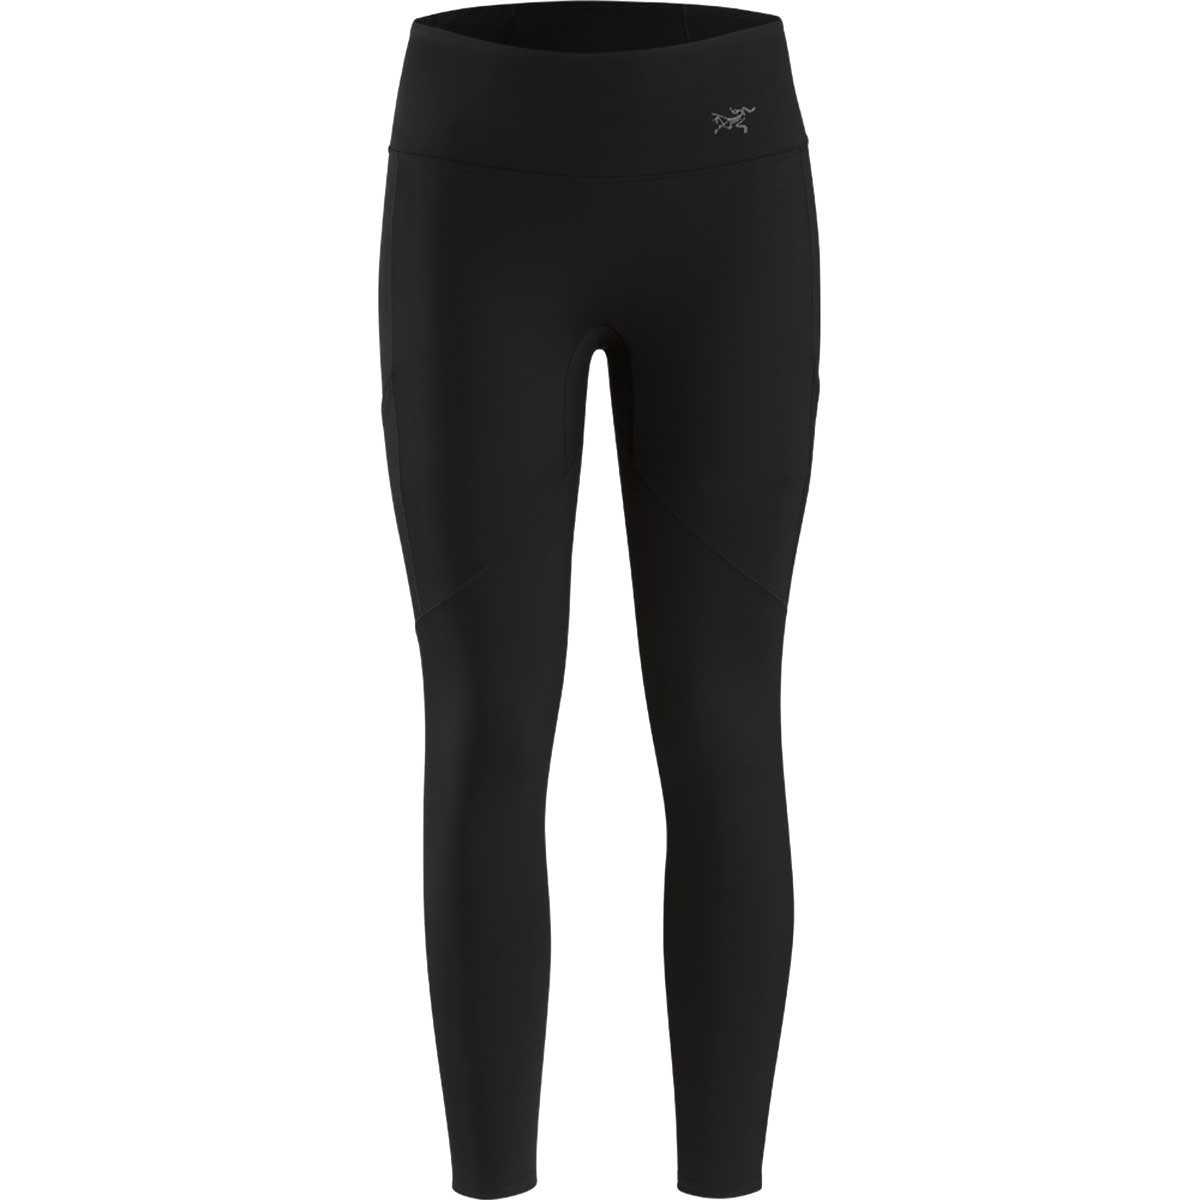 Arcteryx women's Oriel Legging in Black main view